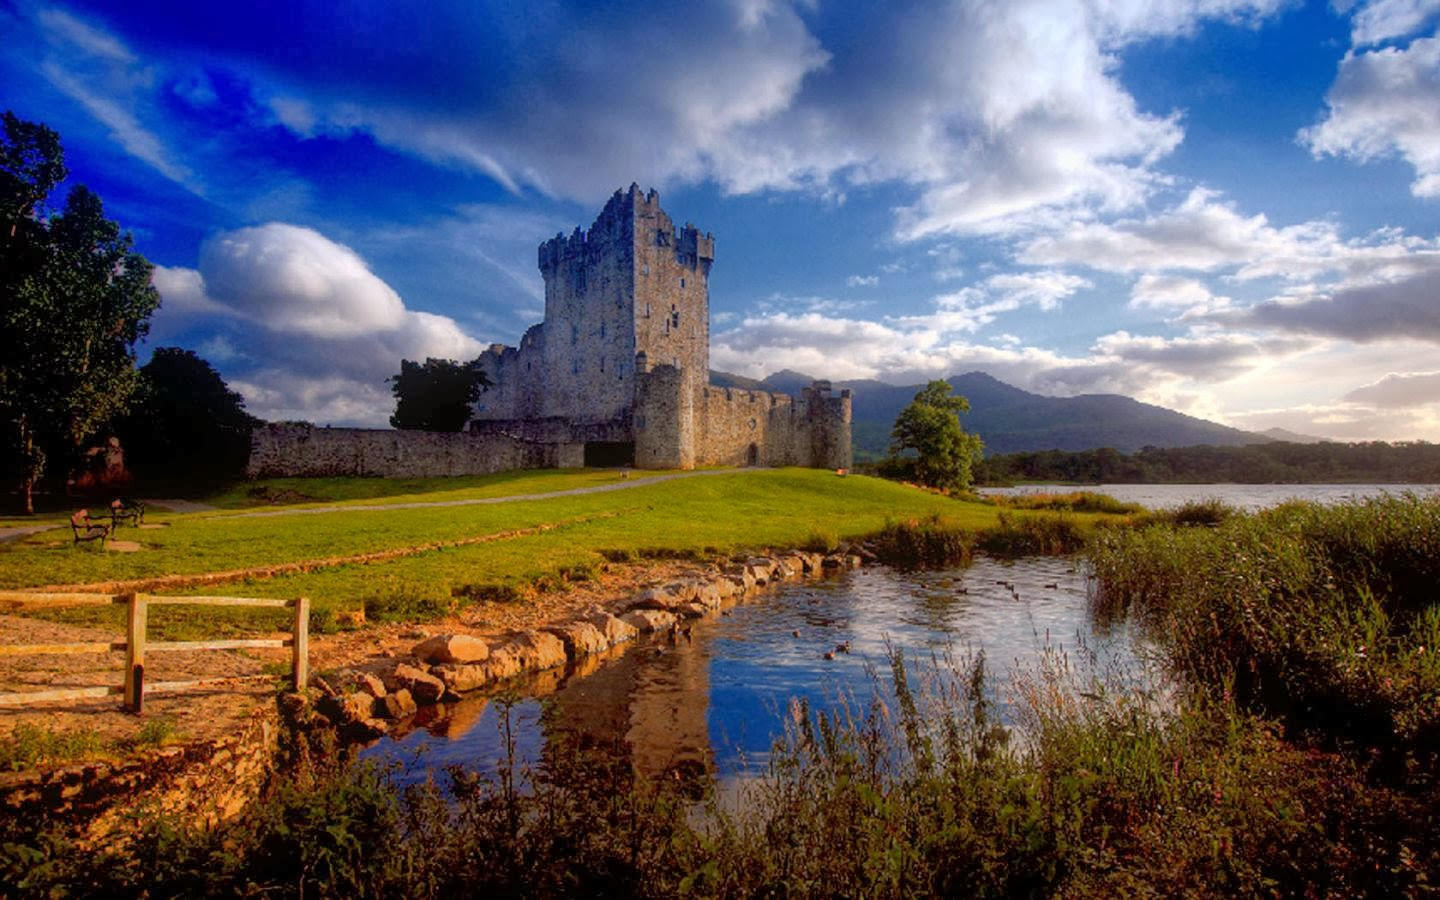 the irish summer The summer galway program is ideal for students interested in learning about irish studies in a lively, student-oriented city on ireland's west coast galway's.